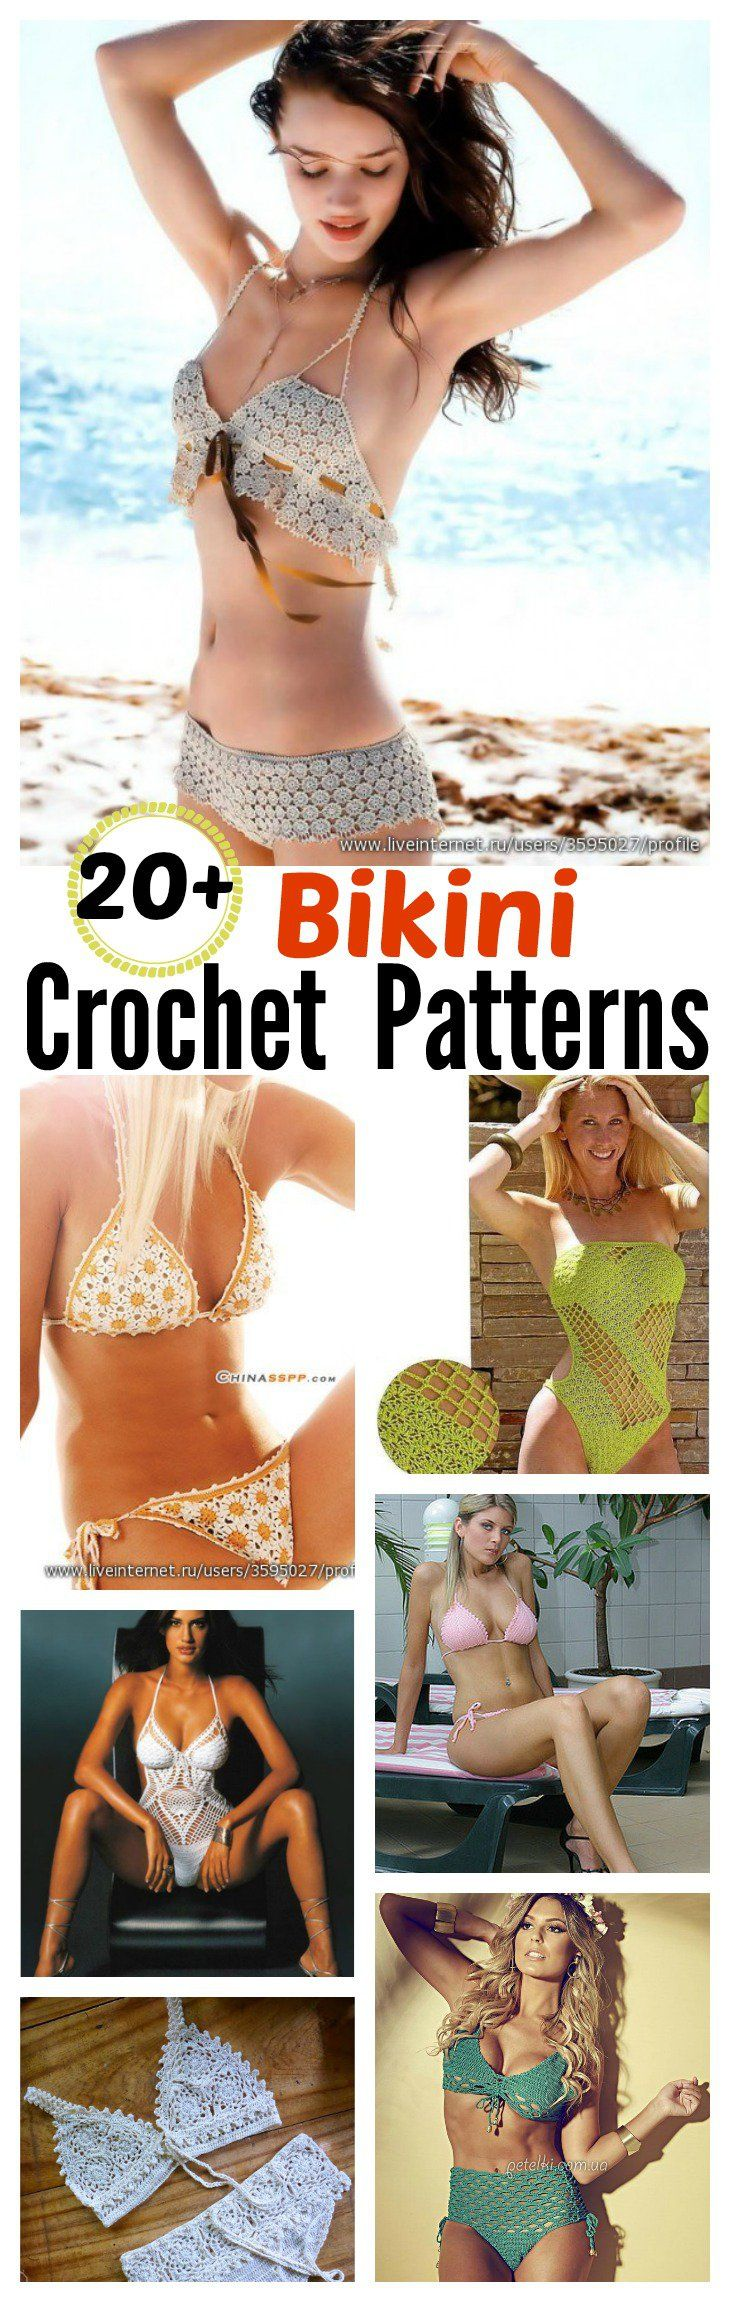 20+ Free Crochet Bikini Patterns http://amzn.to/2sBrNhe